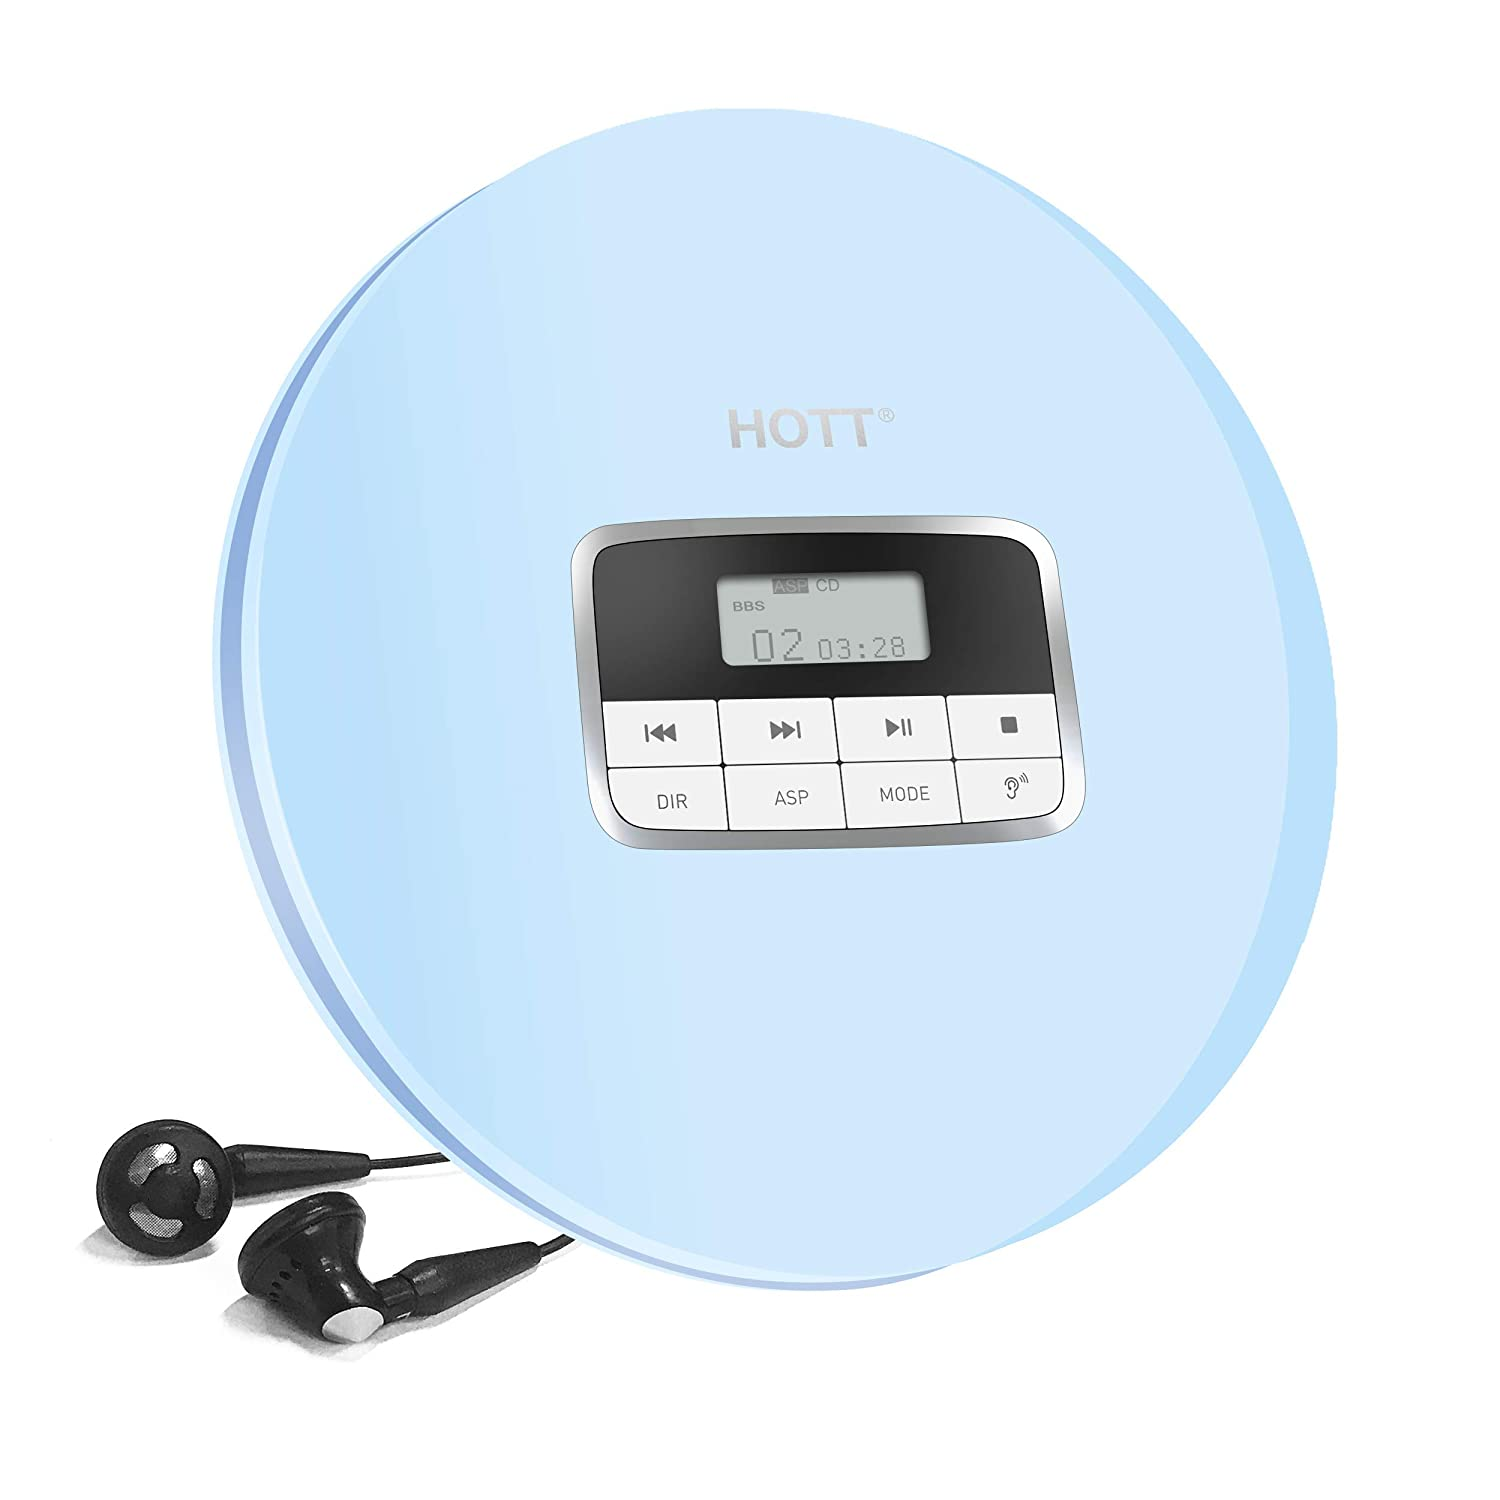 HOTT CD511 Personal CD Player with Headphone Portable CD Player Blue Anti-Skip//Shockproof Protection Compact CD Music Disc Walkman Player with LCD Display for Adults Students Kids